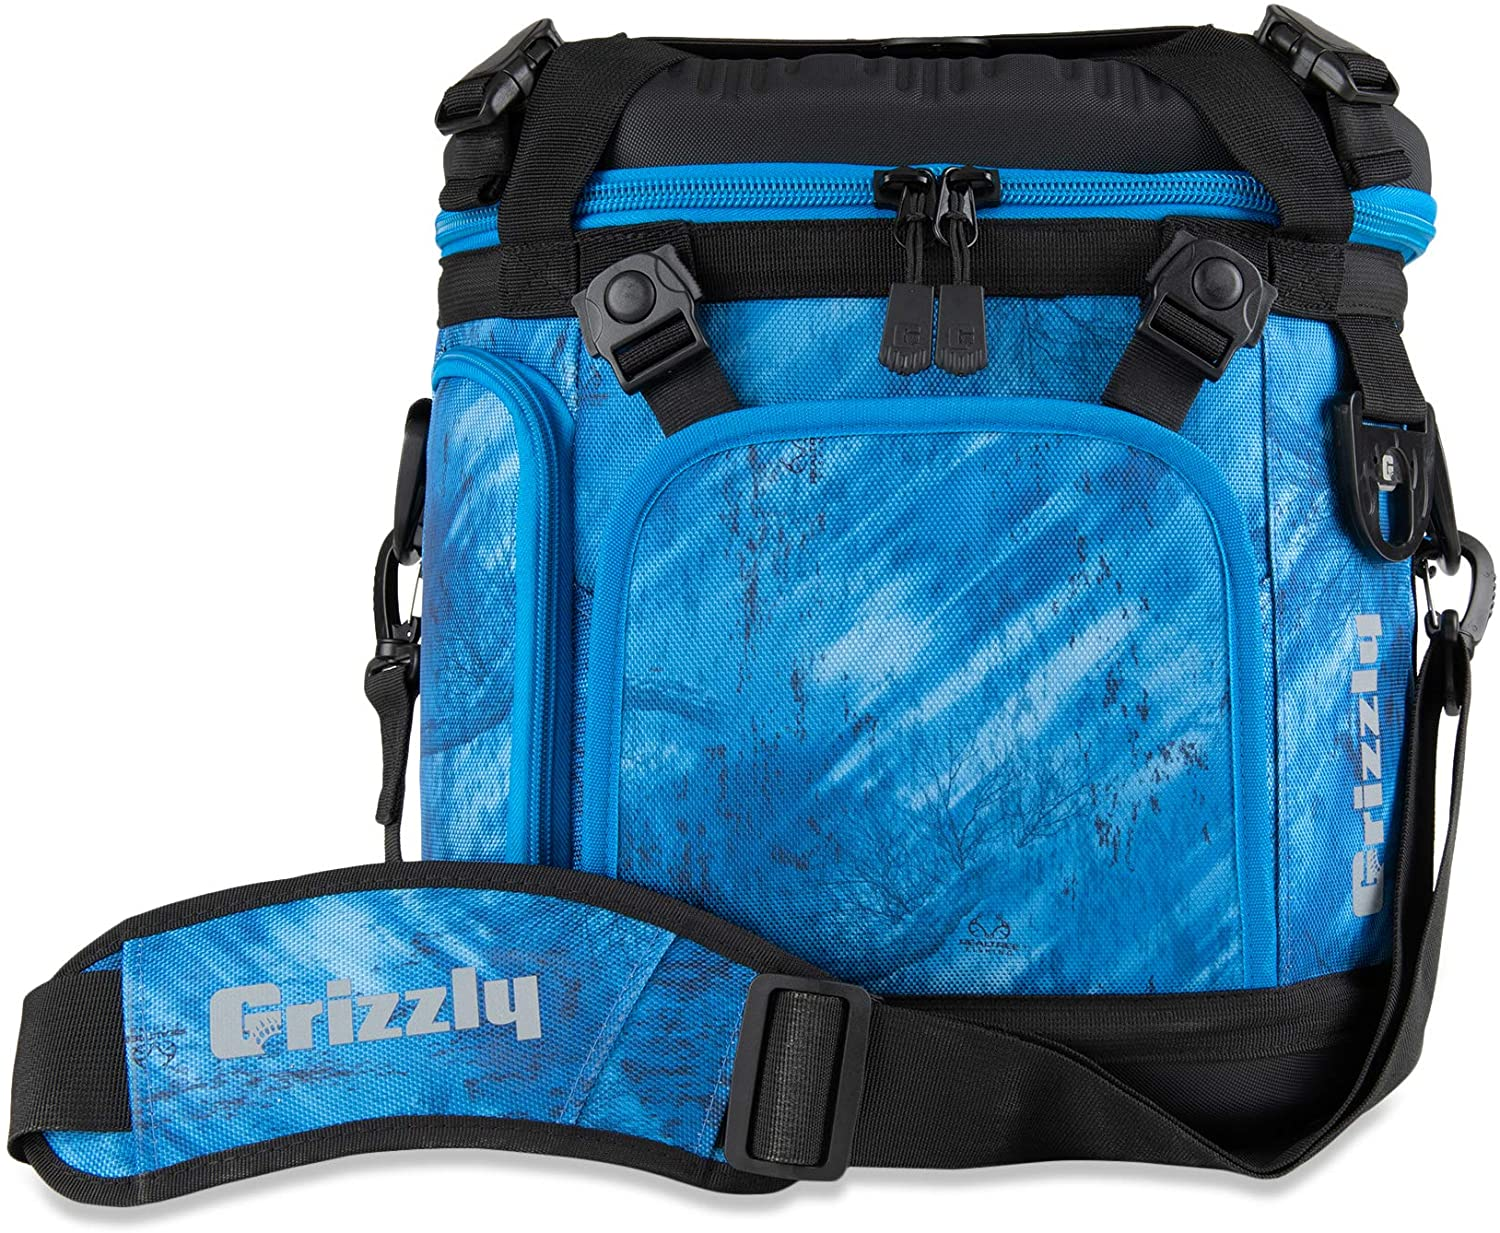 Grizzly Drifter 20 Flip-top Soft Cooler, Realtree Fishing Blue/Black, 20 QT